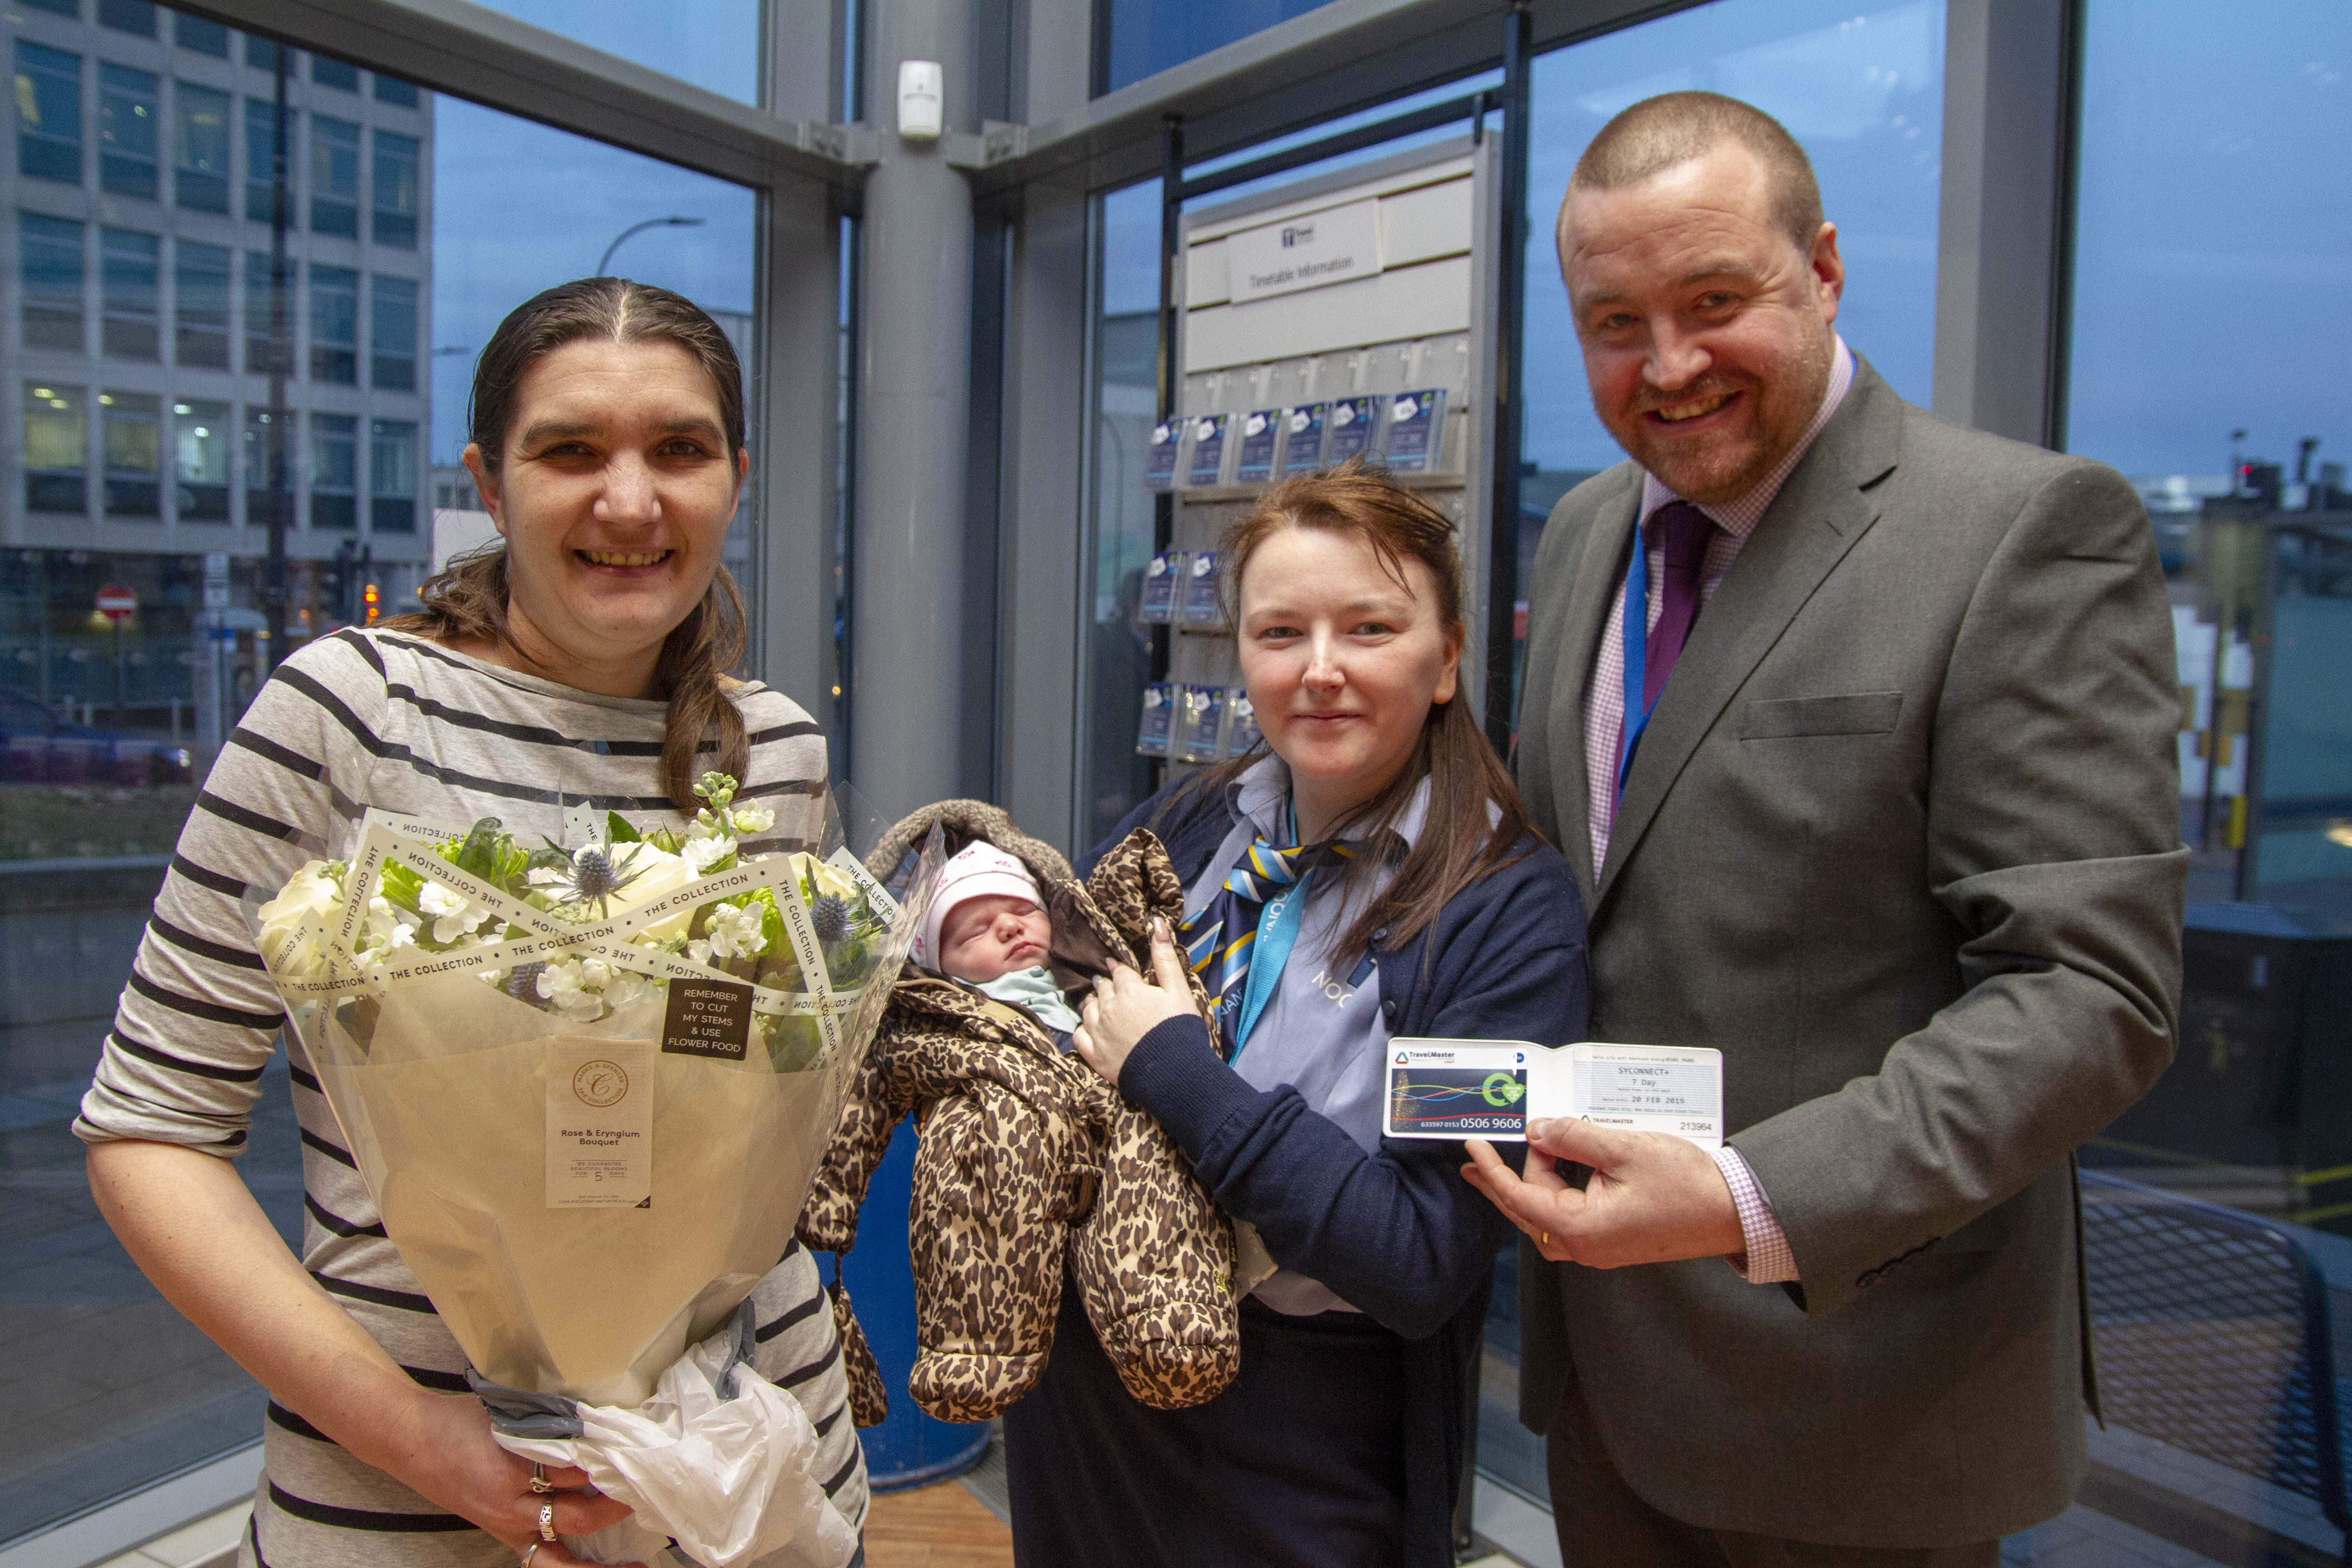 It's a girl! Baby delivered by bus station staff